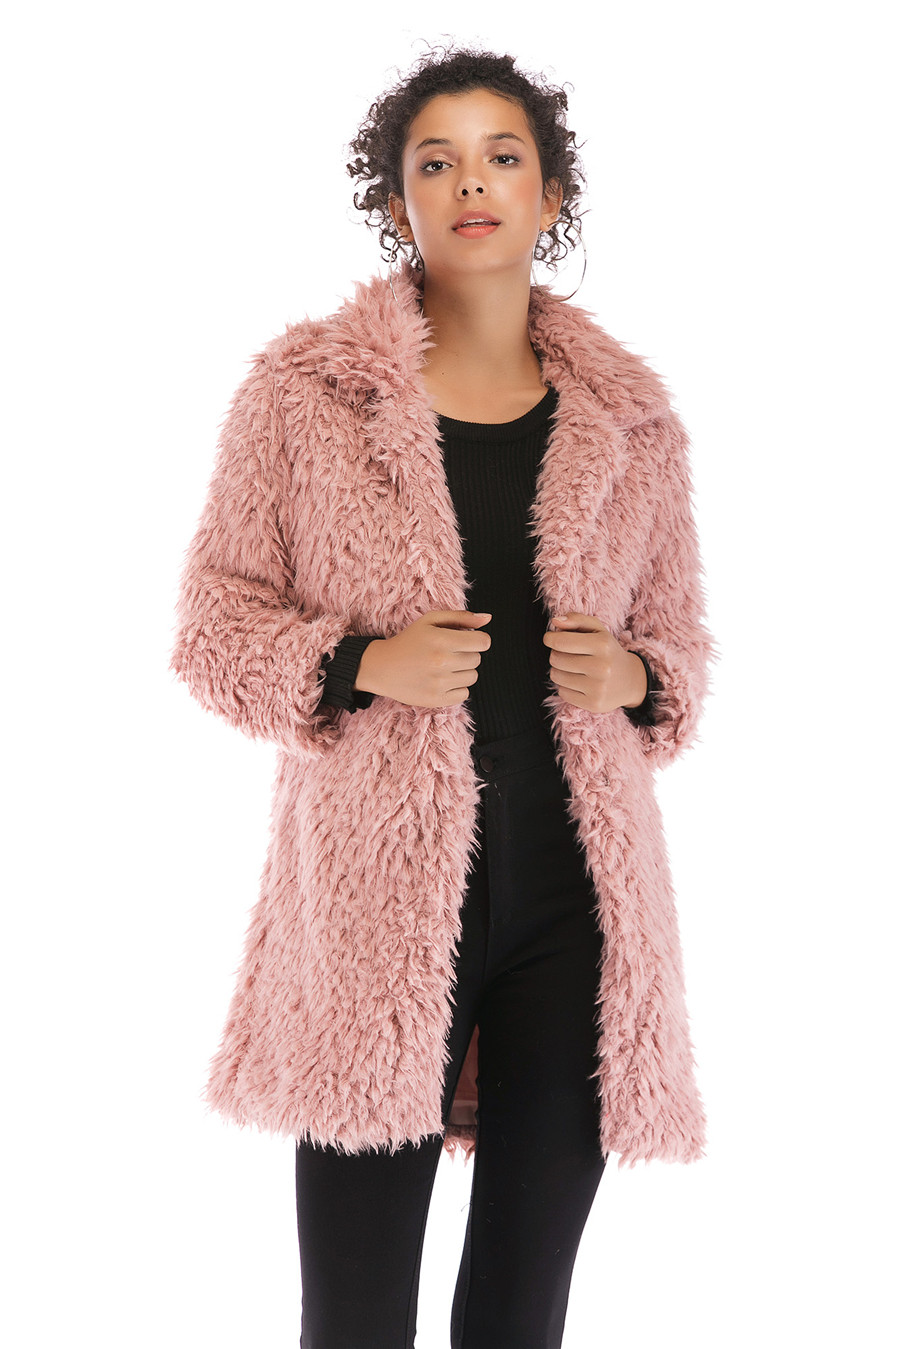 Gladiolus 2018 Women Autumn Winter Coat Turn-Down Collar Long Sleeve Covered Button Long Warm Shaggy Faux Fur Coat Women Jackets (30)